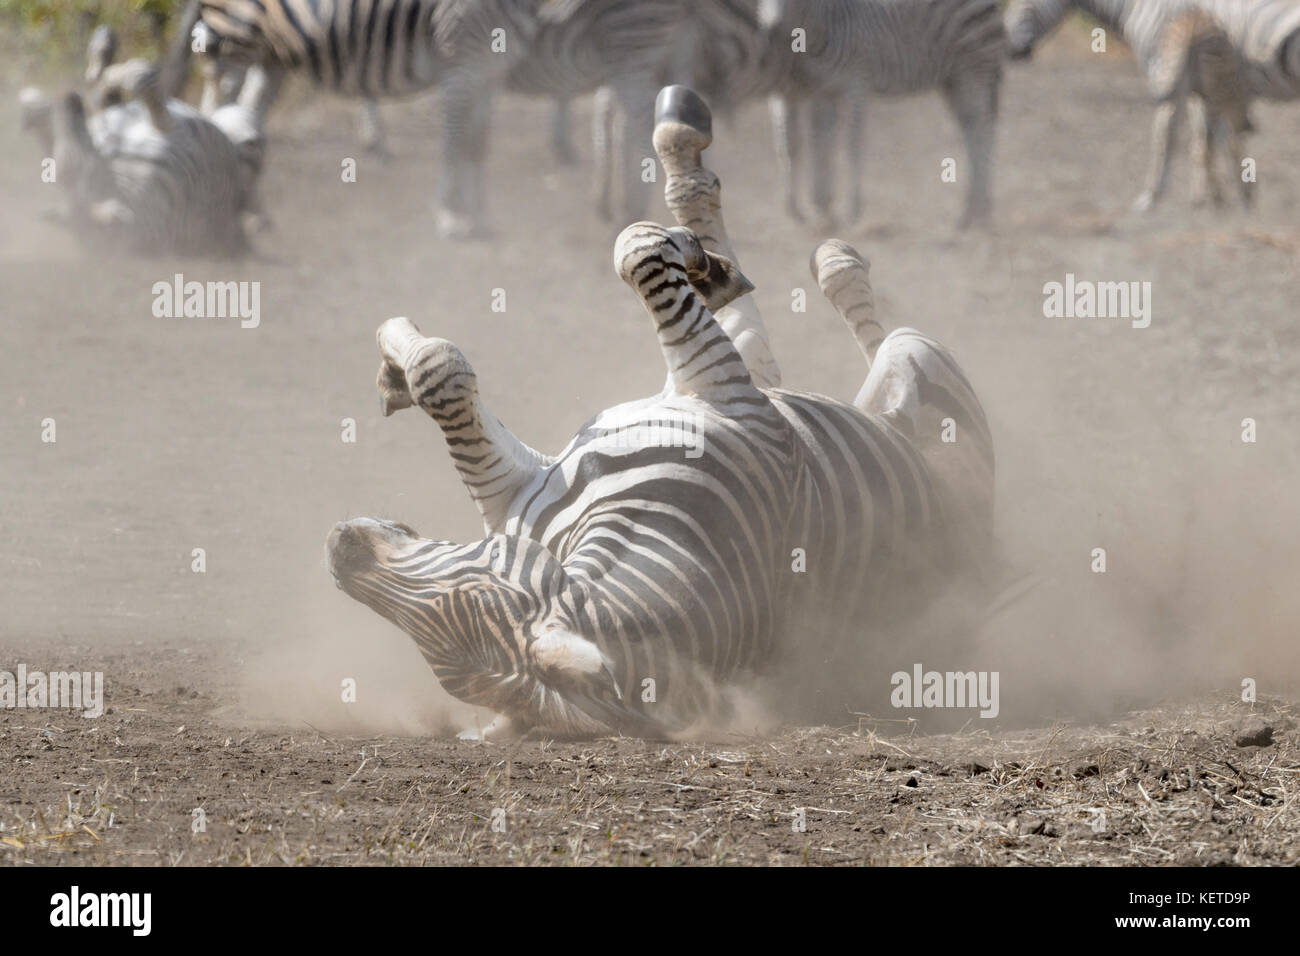 Plains zebra (Equus quagga) rolling in dust on savanna, Kruger National Park, South Africa - Stock Image